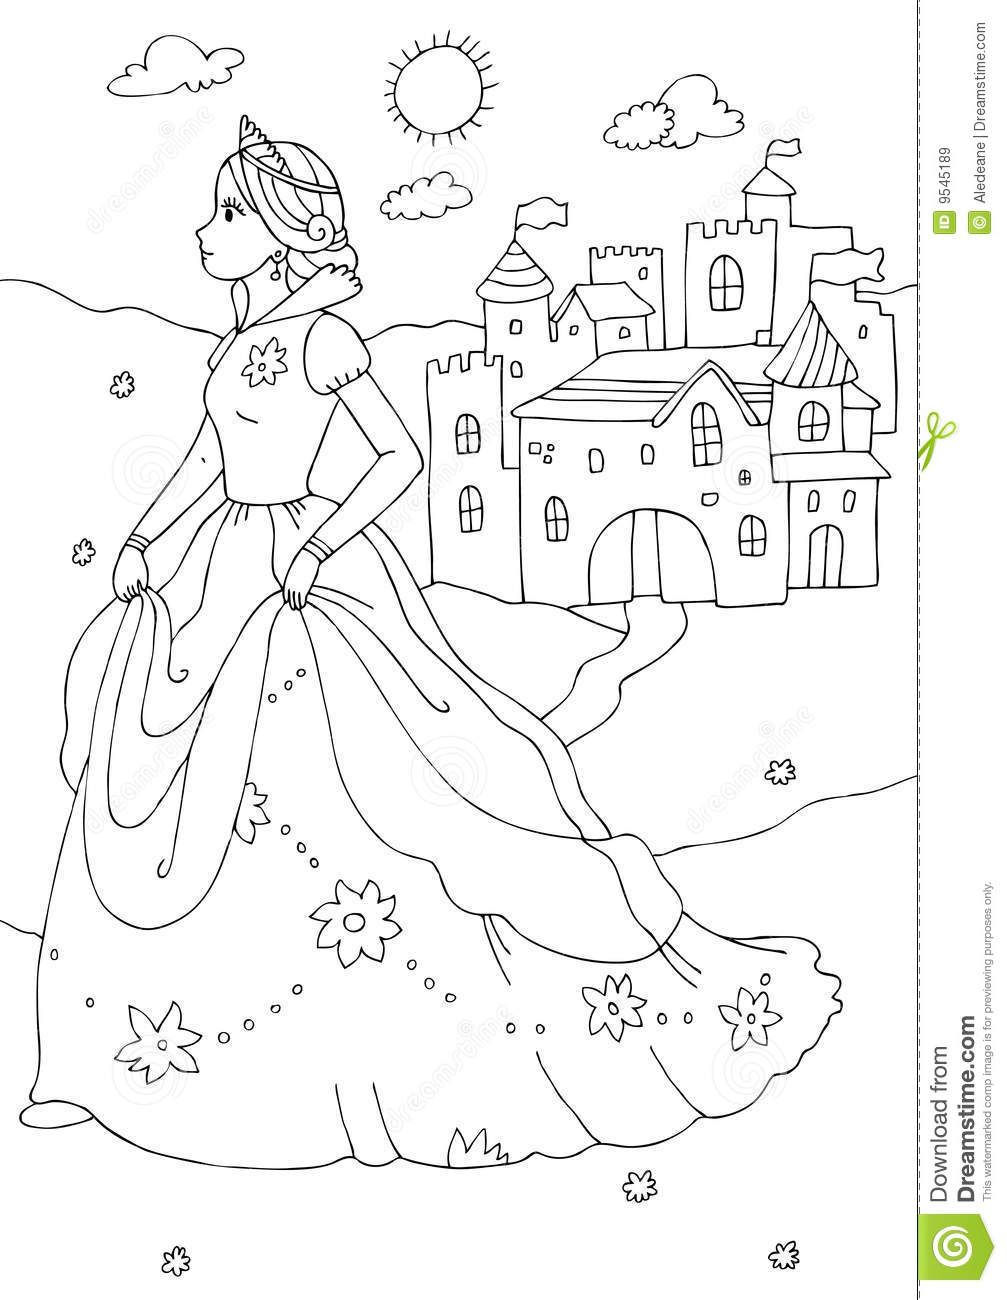 pin by jacy legault on kids castle coloring page